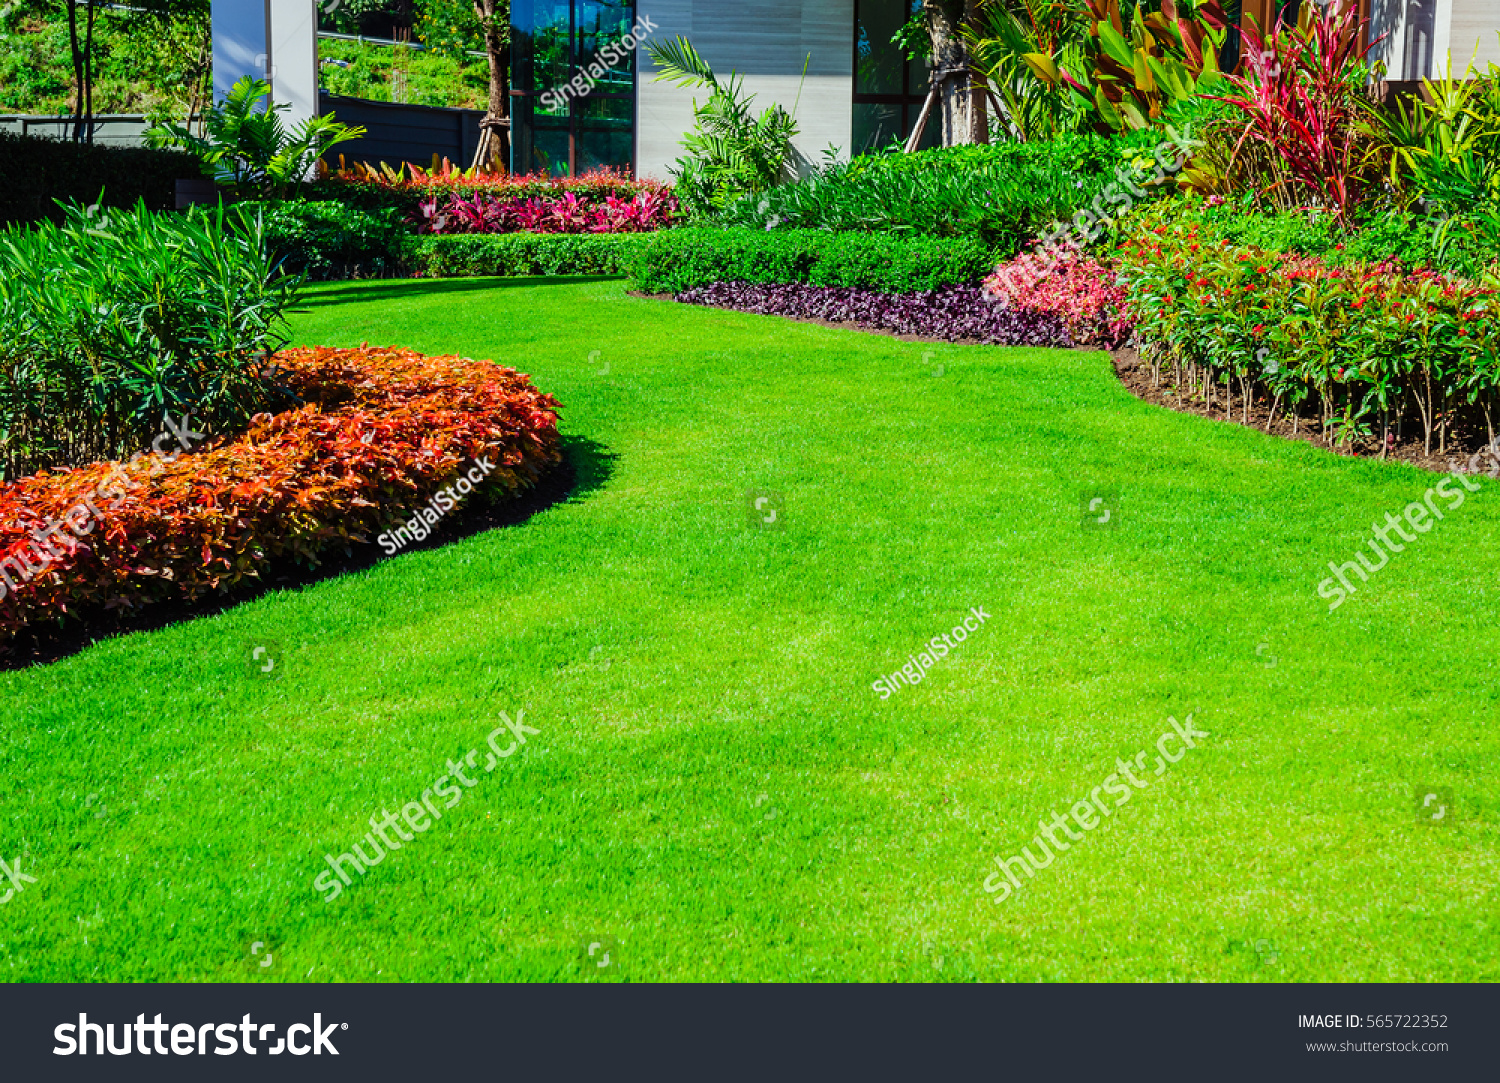 Green Grass Front Lawn Background Garden Stock Photo (Royalty Free ...